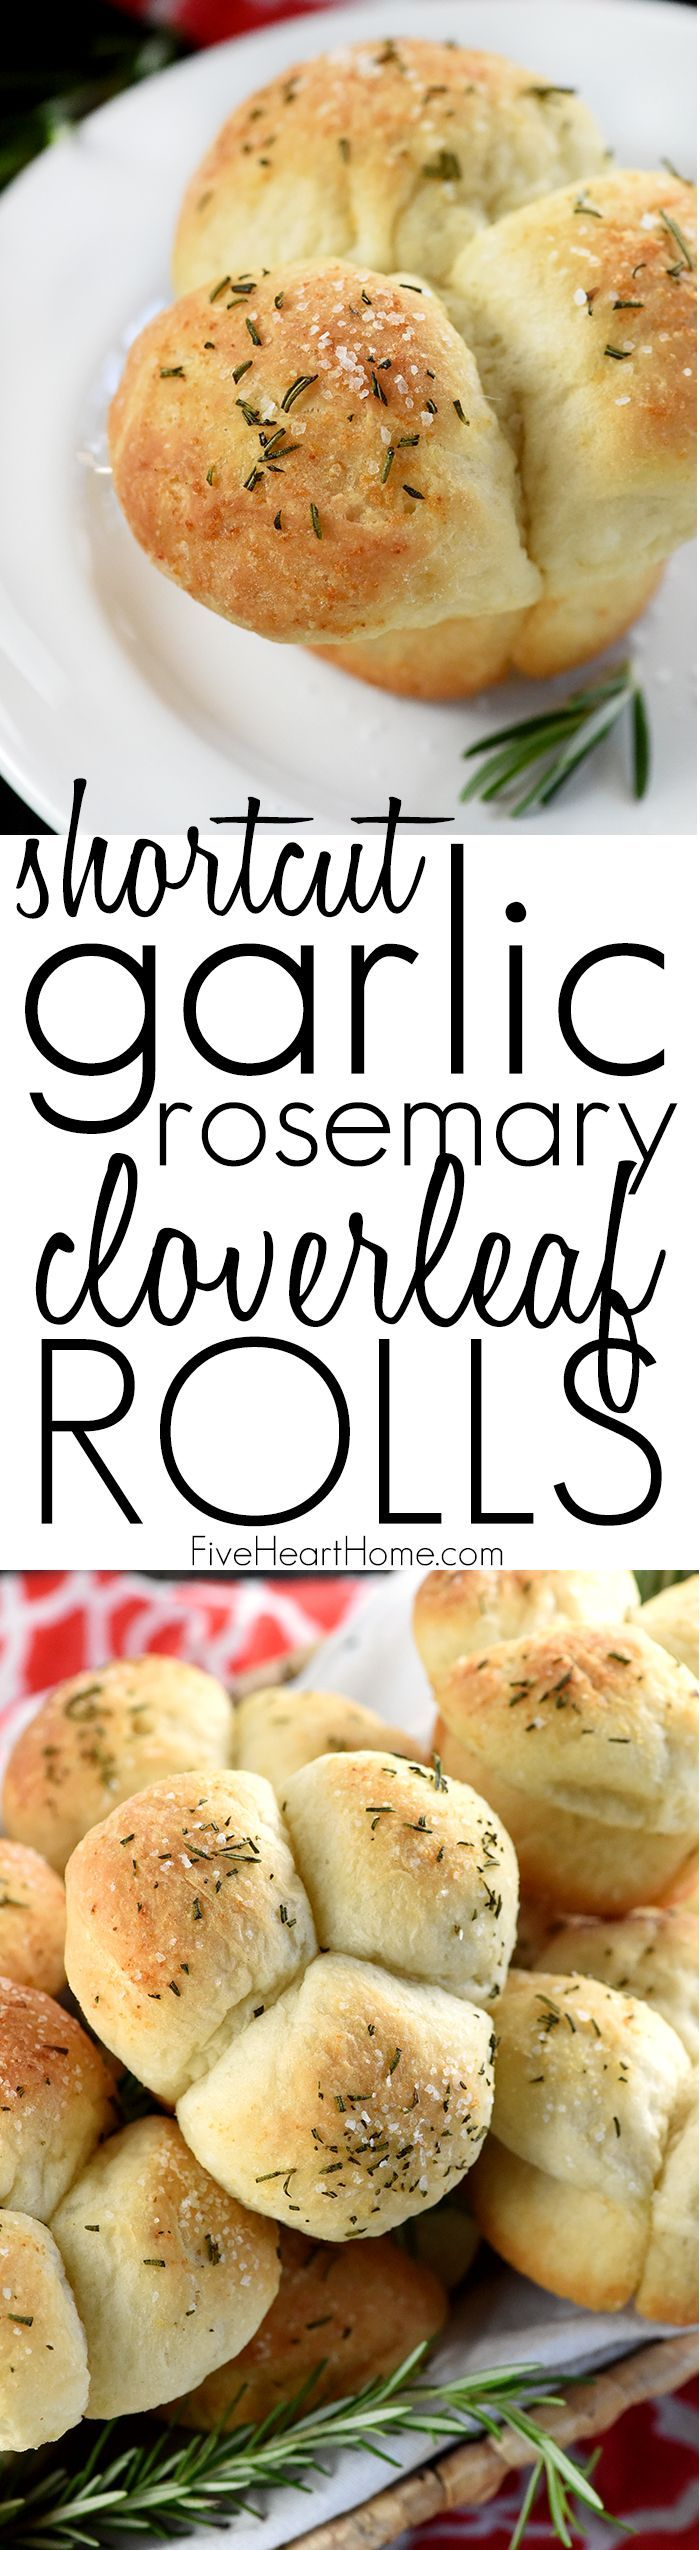 Quick & Easy Garlic Rosemary Cloverleaf Dinner Rolls ~ when time is short and homemade isn't possible, frozen bread dough is a quick and easy shortcut ingredient for making lovely dinner rolls, perfect for Thanksgiving, Christmas, Easter, or any holiday meal or special occasion! | FiveHeartHome.com